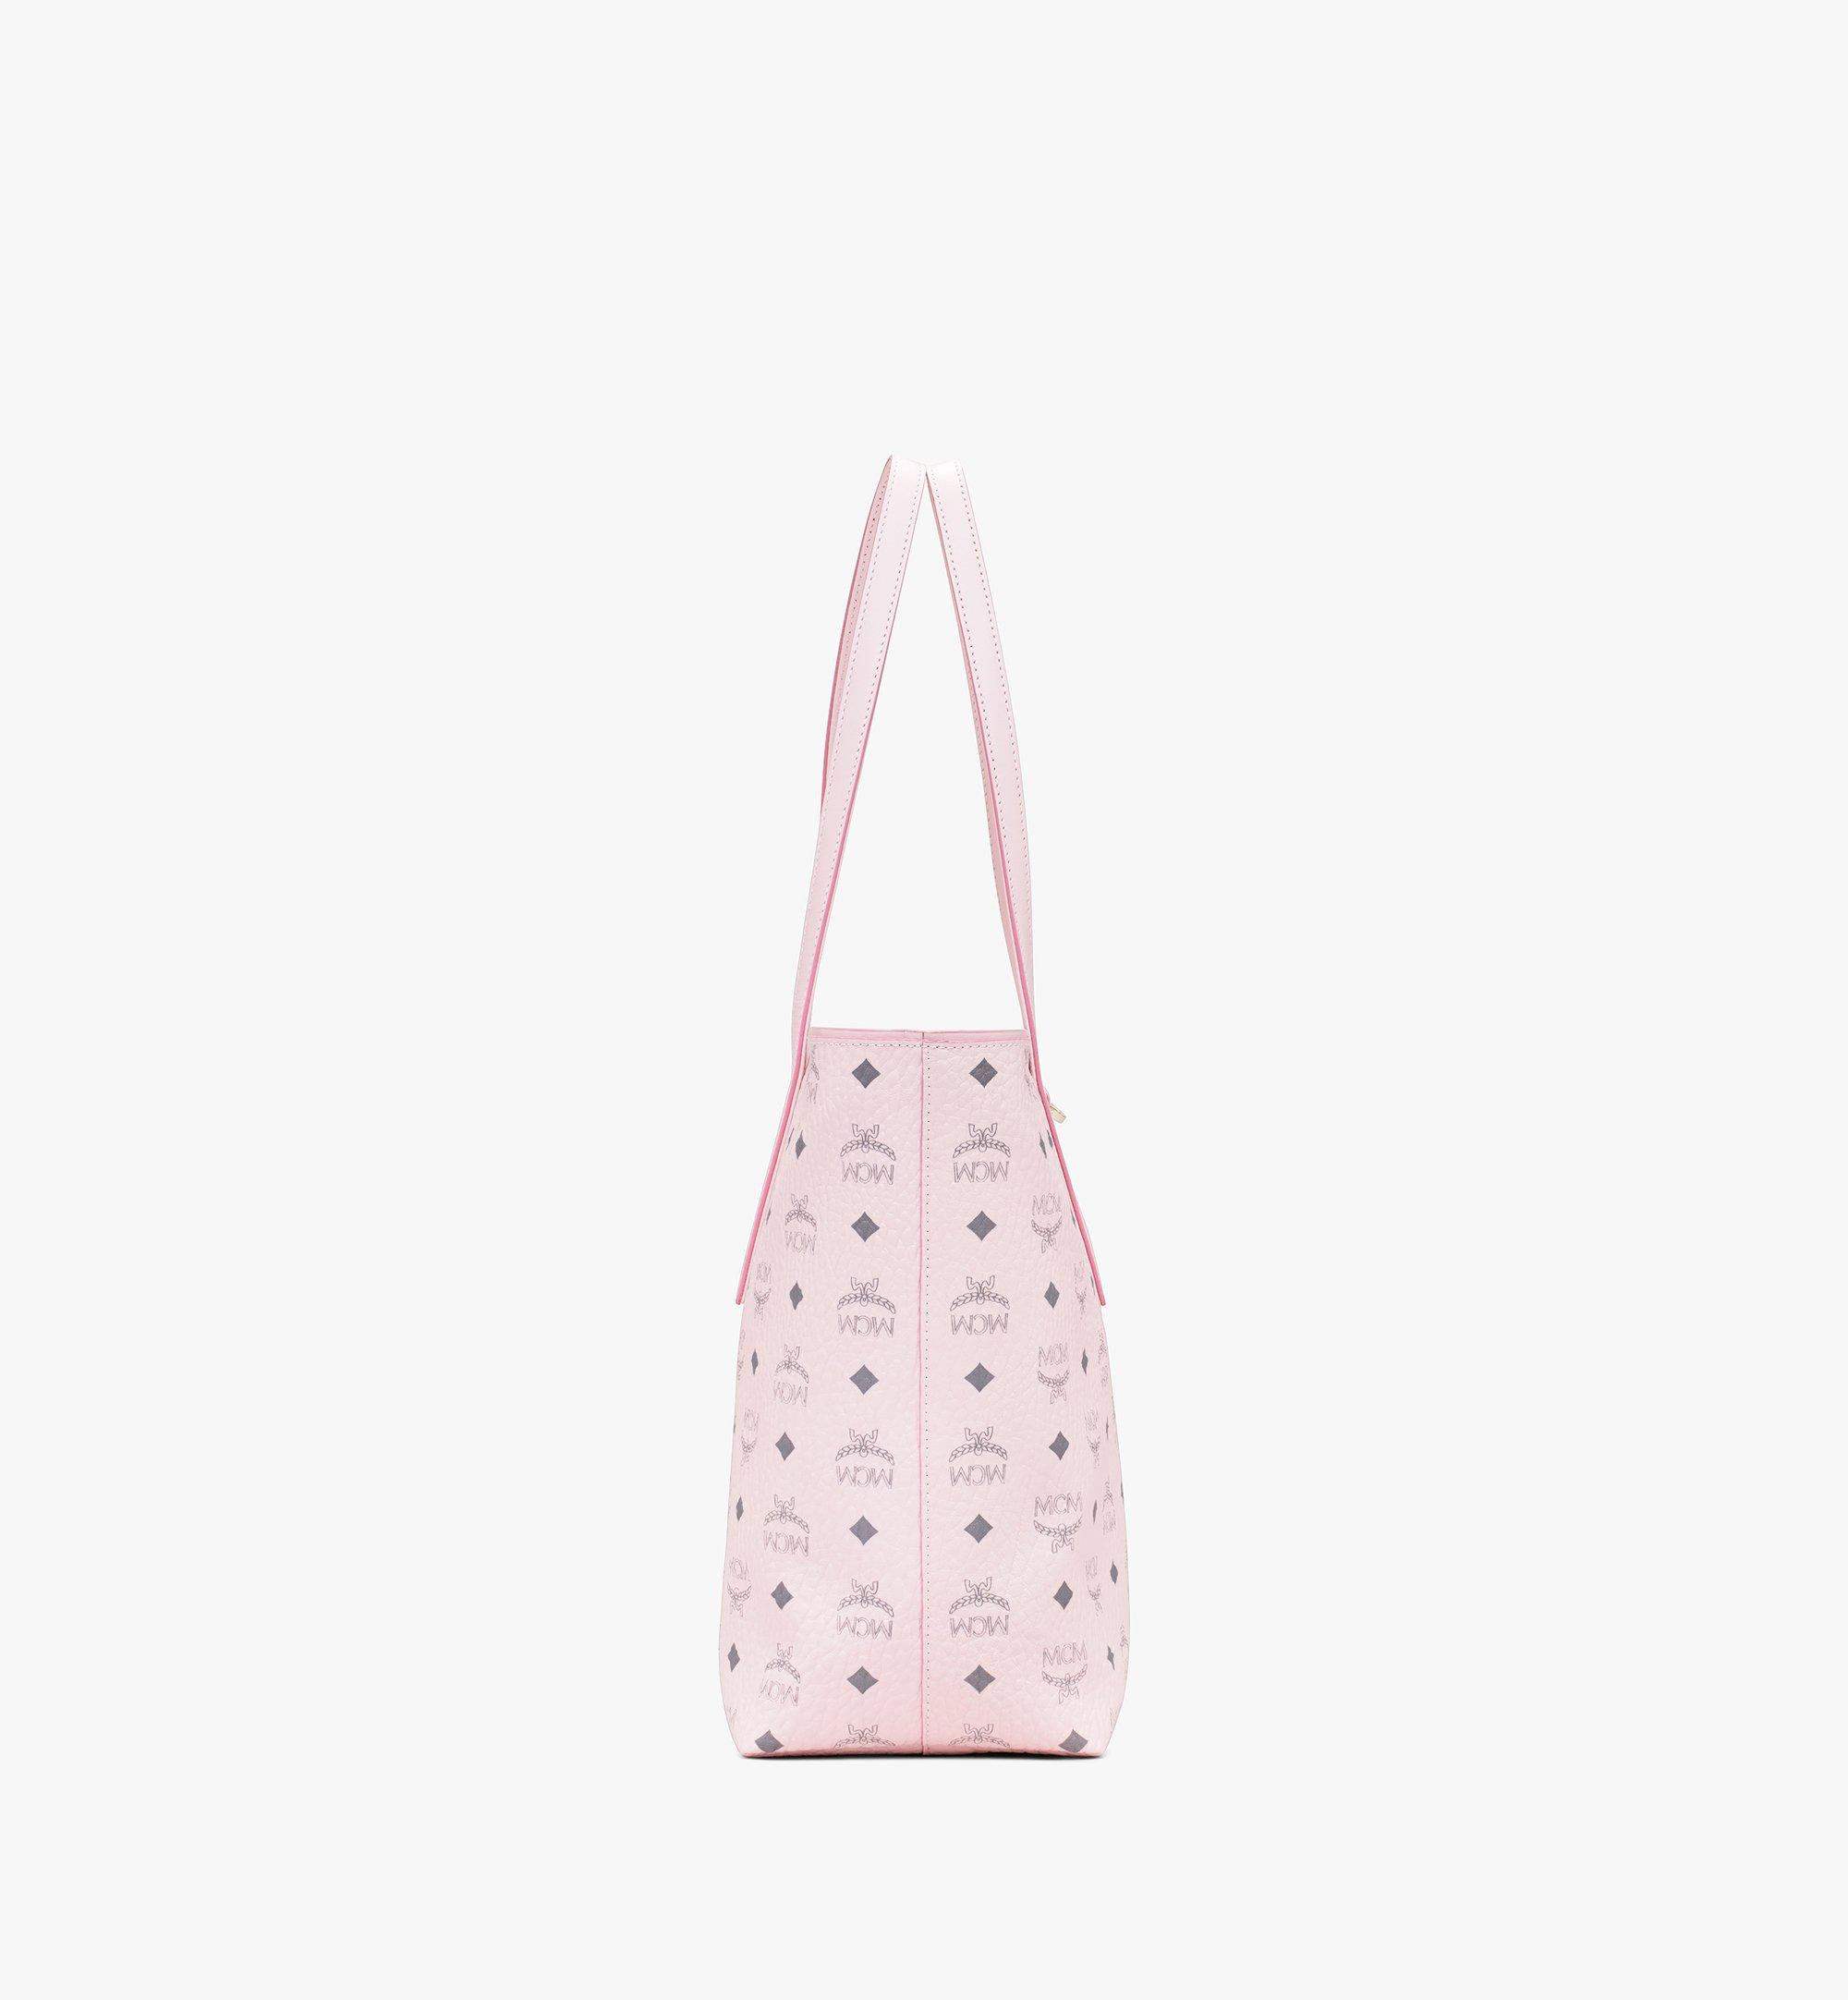 Medium Anya Shopper in Visetos Powder Pink | MCM® DE